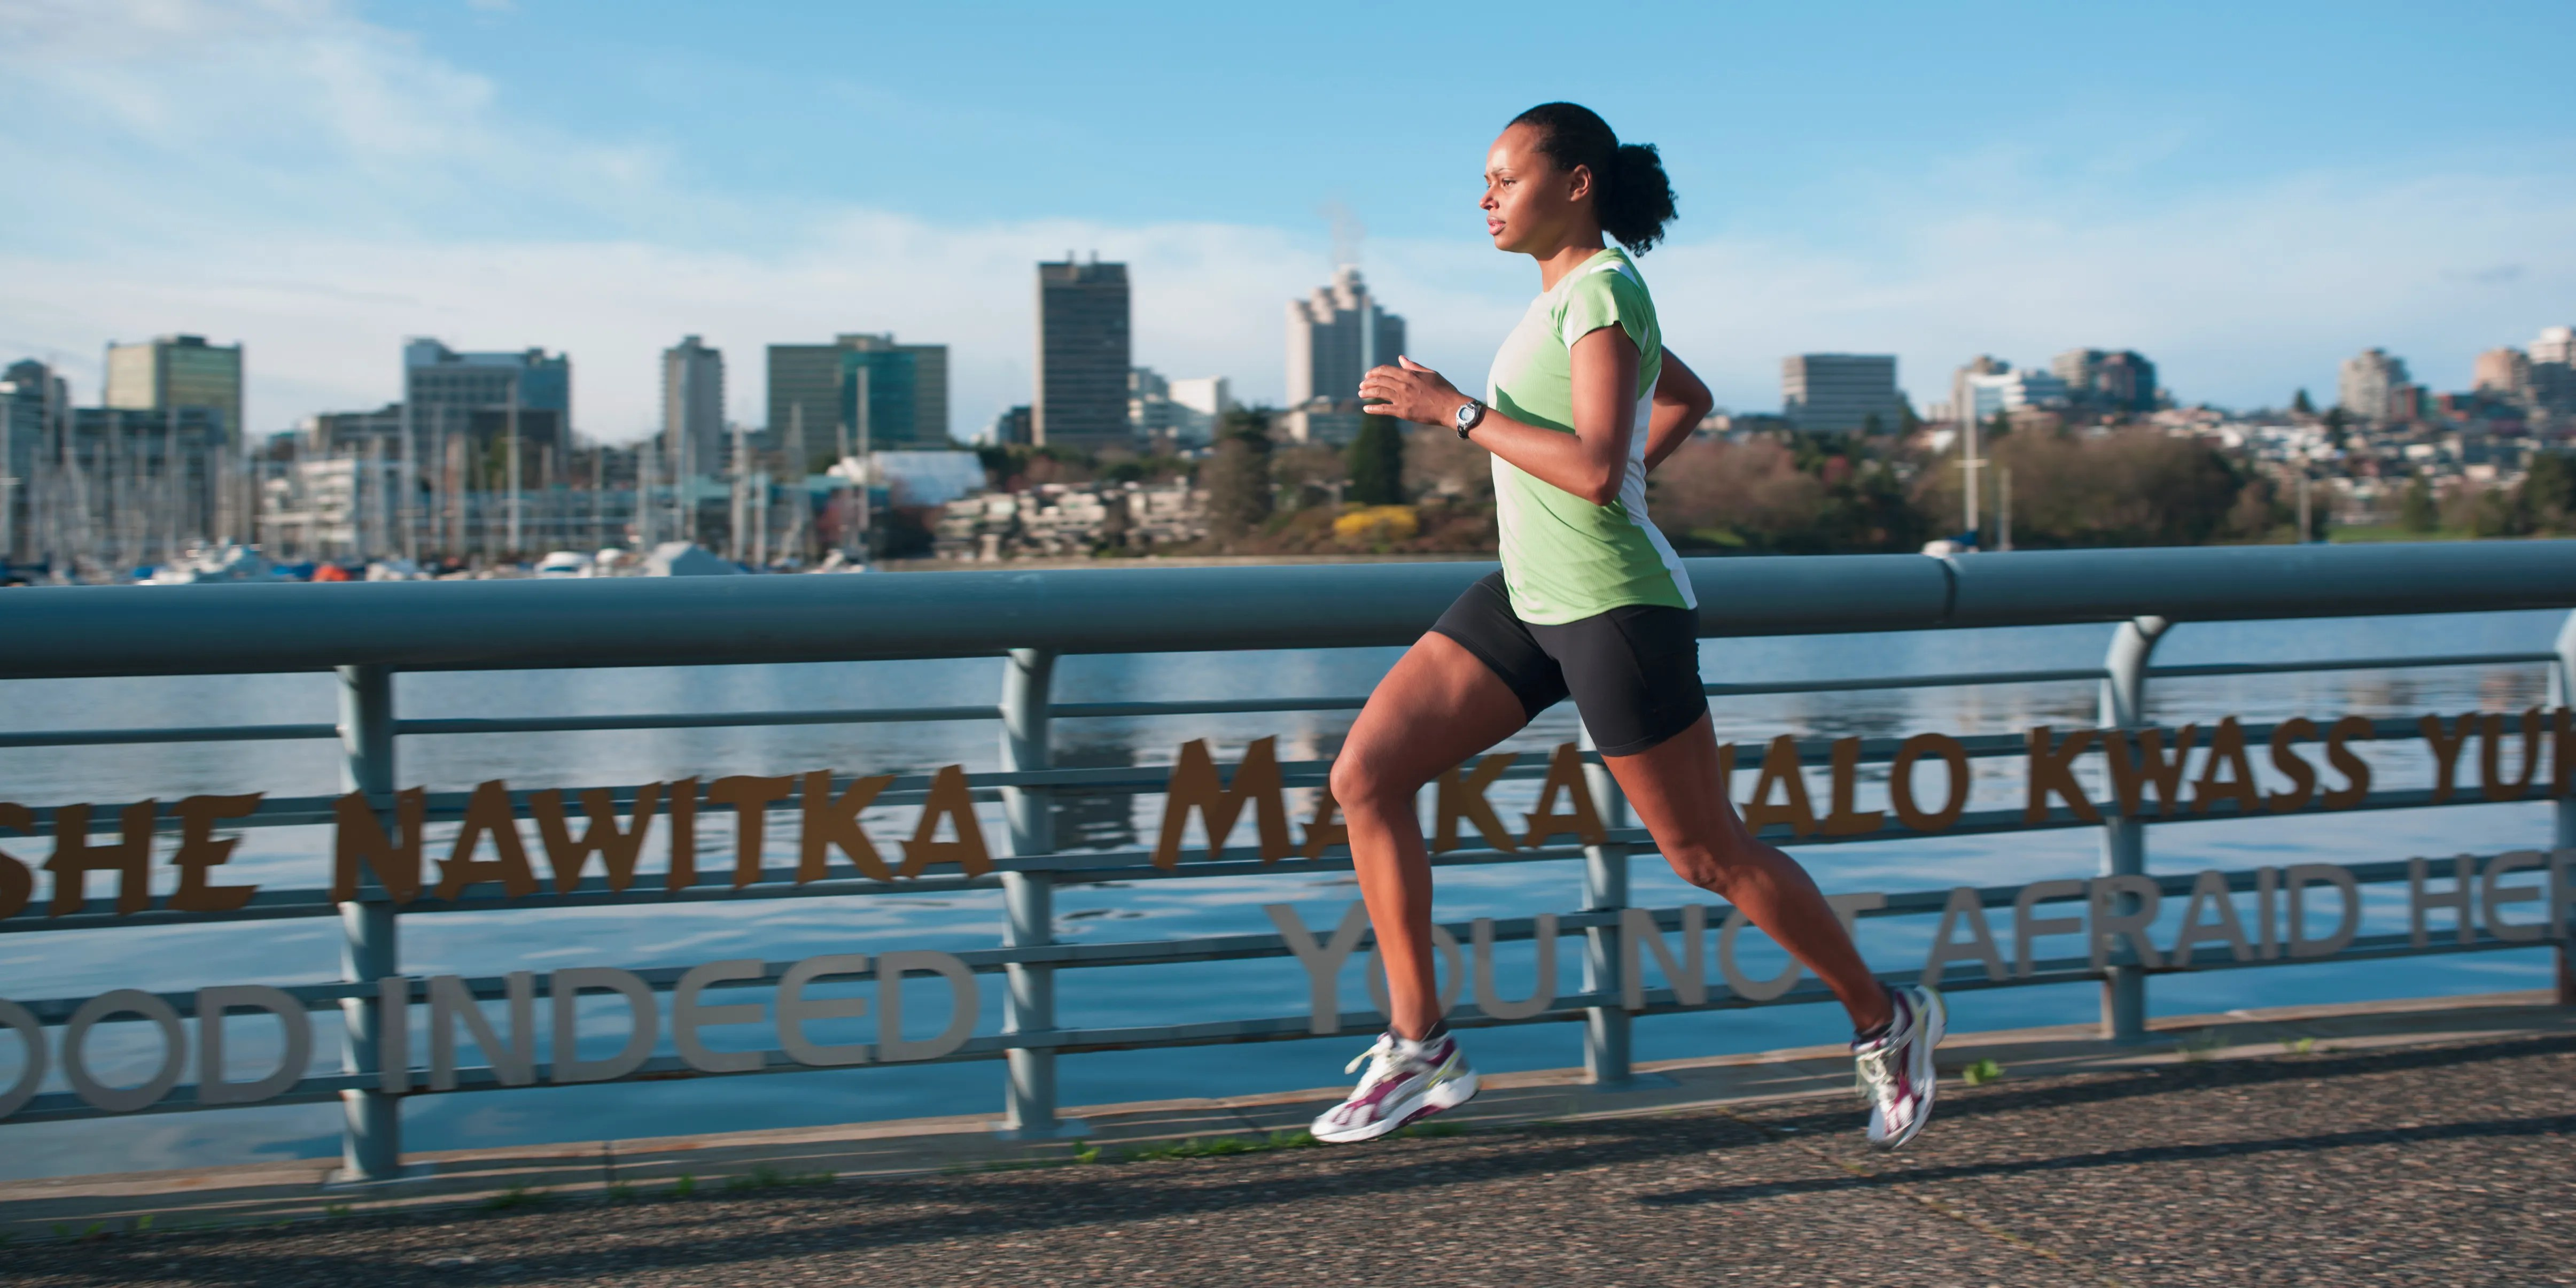 Running Jogging App 6 Things You Should Do If You Want To Become A Faster Runner